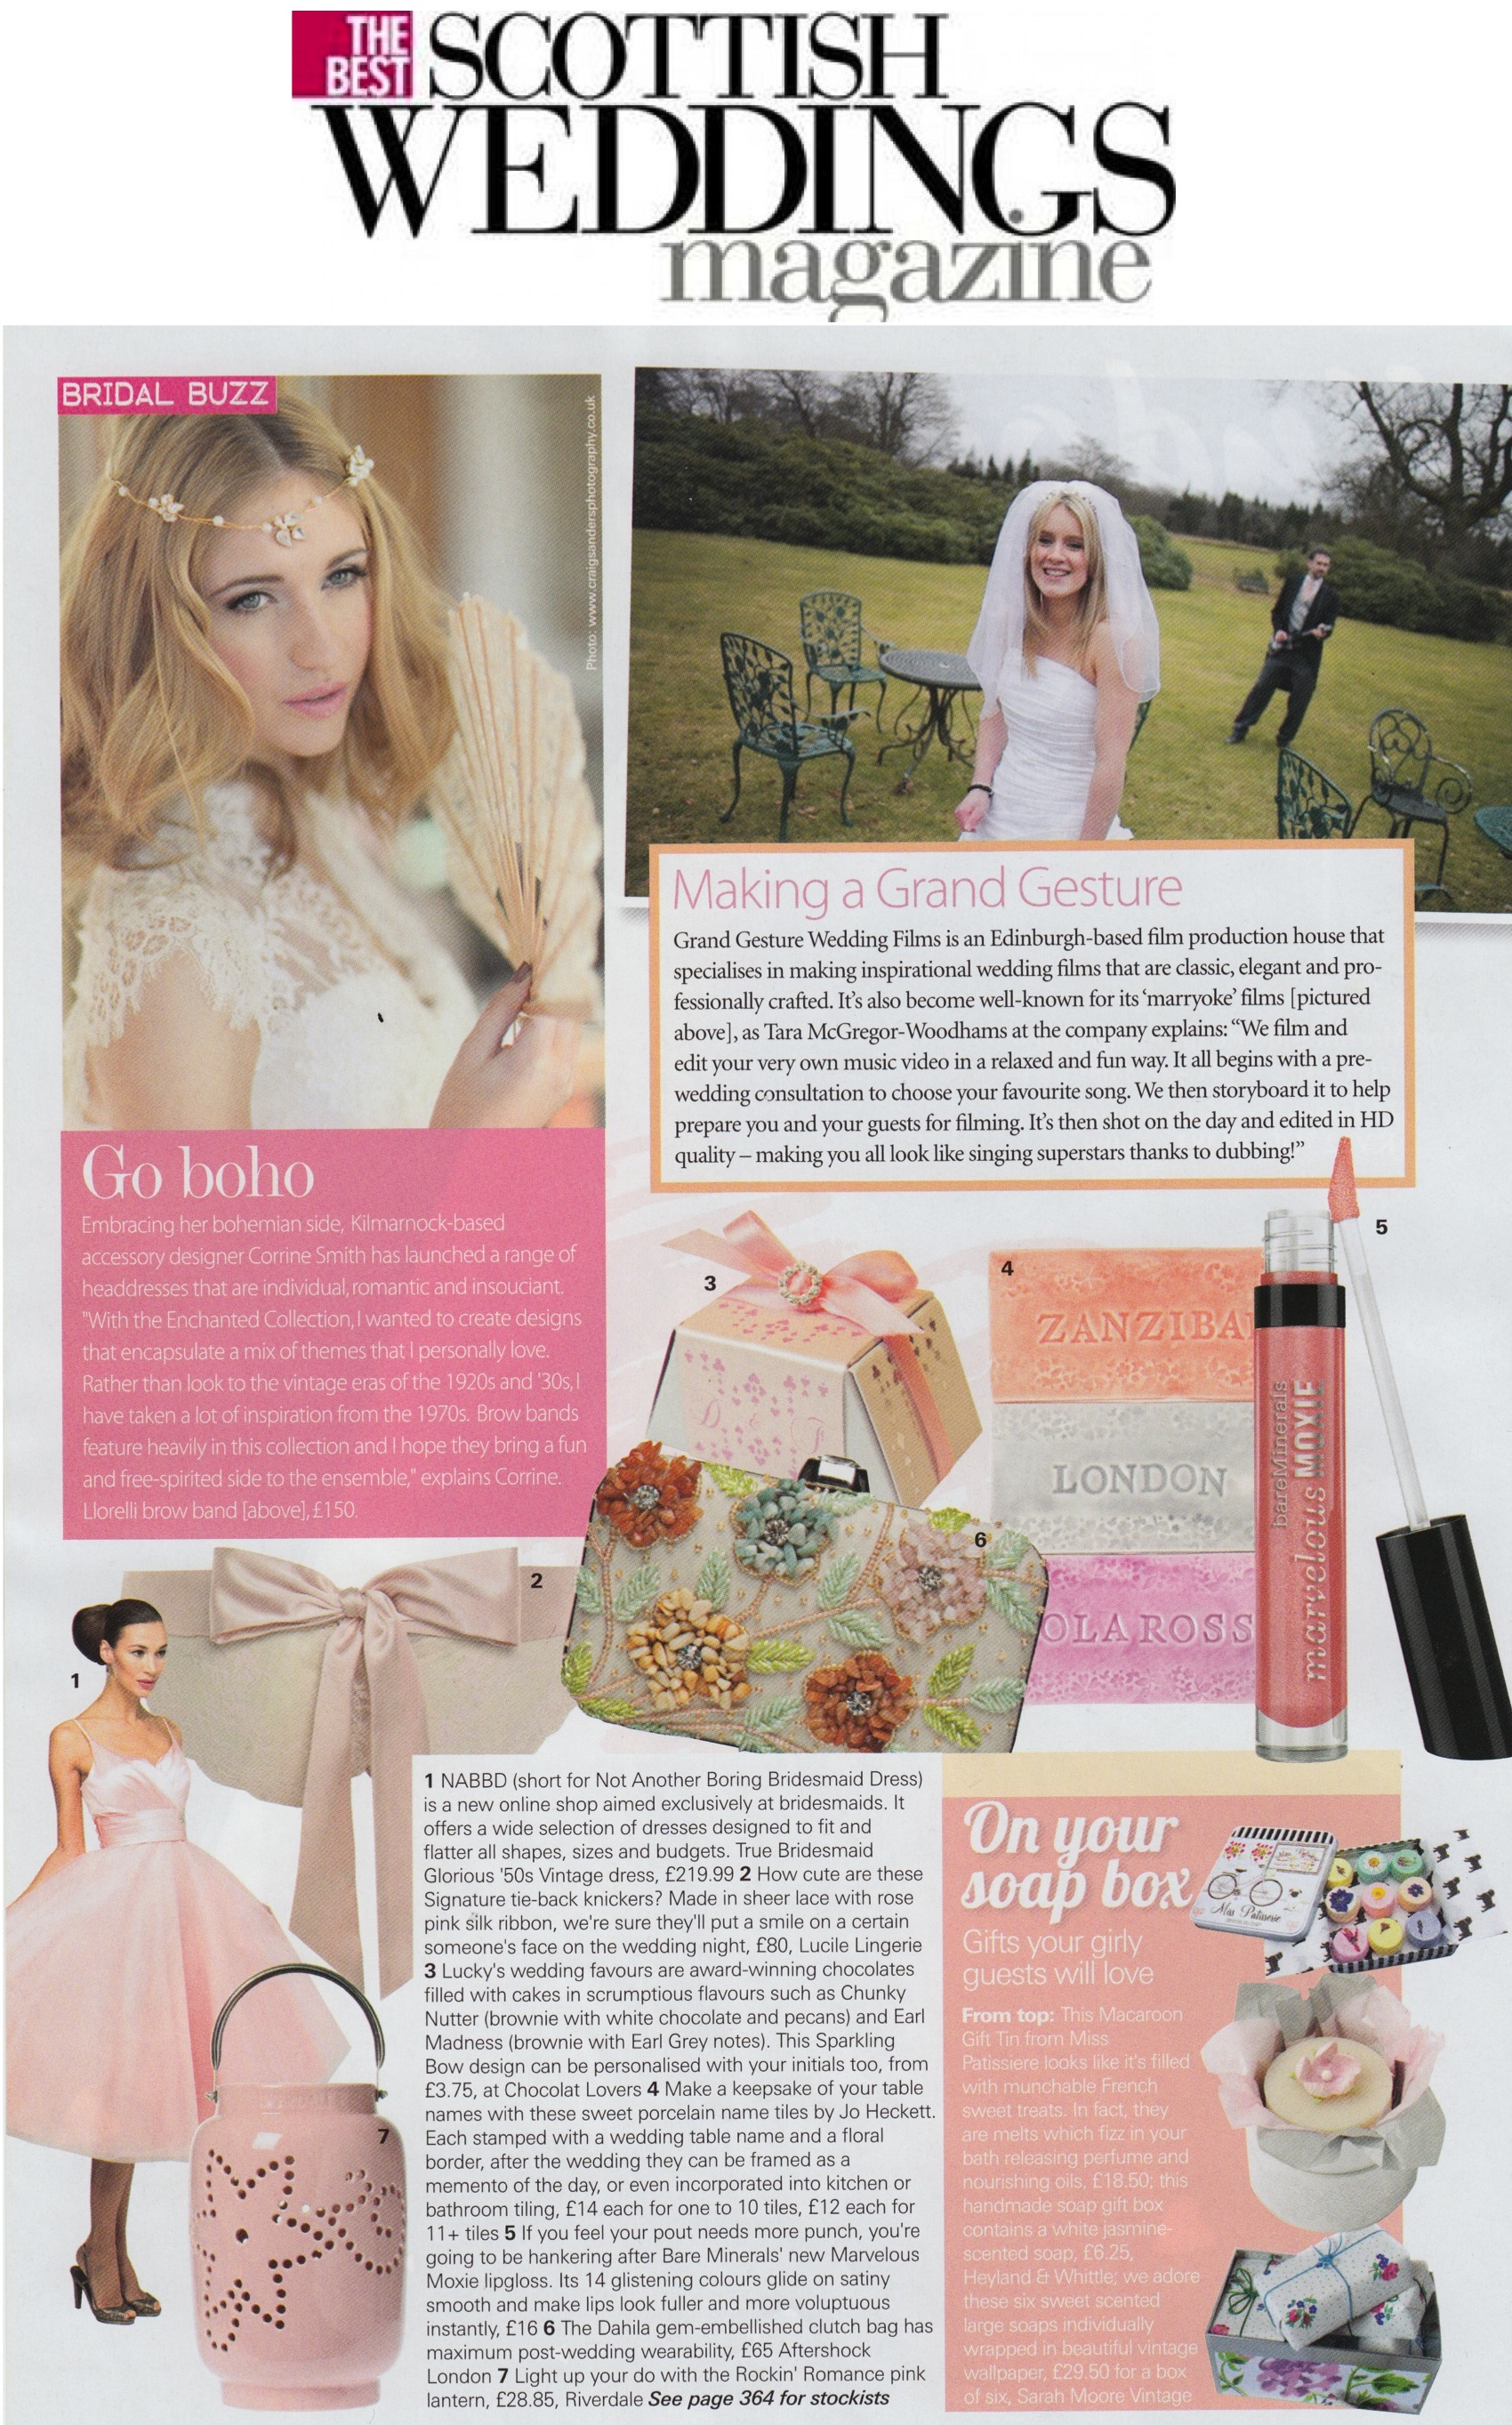 The Best Scottish Weddings - Lucile - Summer Issue